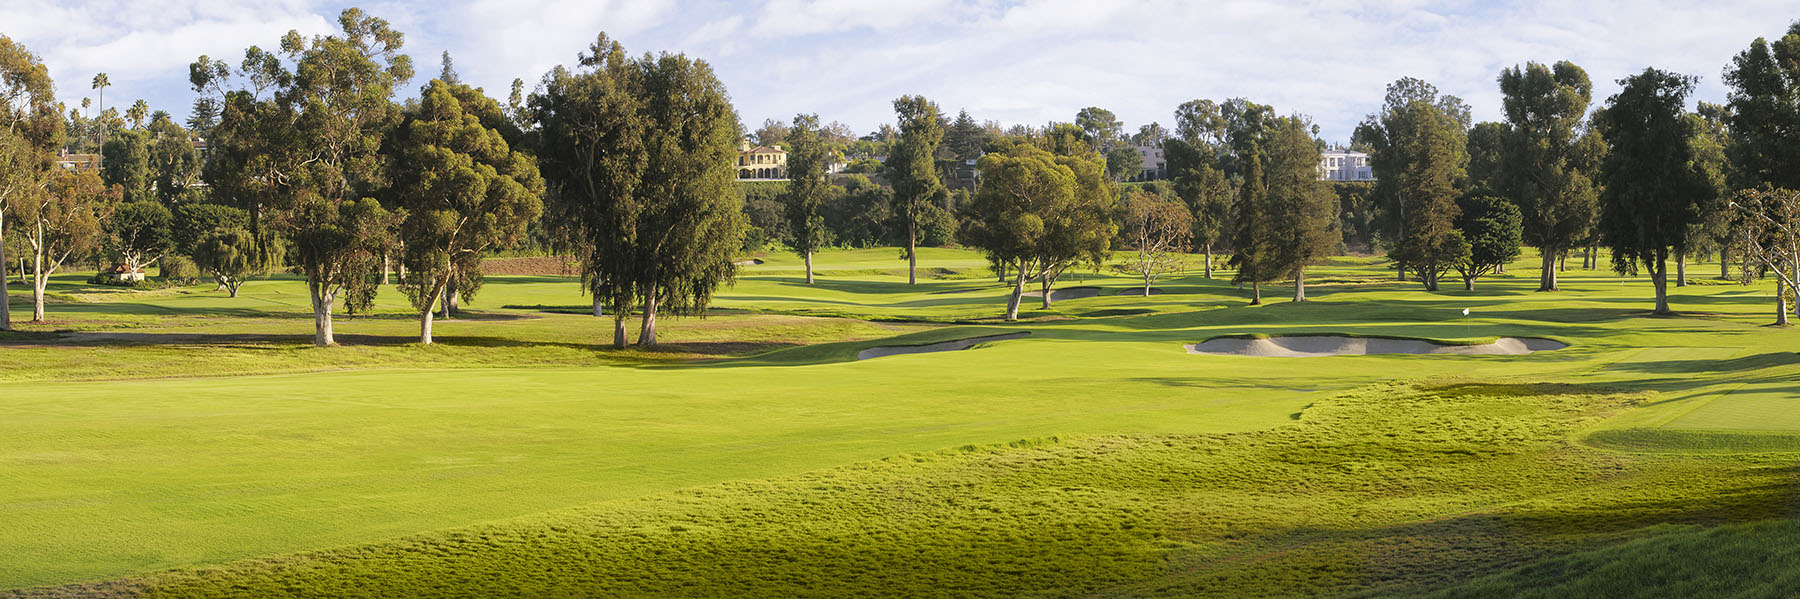 Golf Course Image - Riviera Country Club No. 3